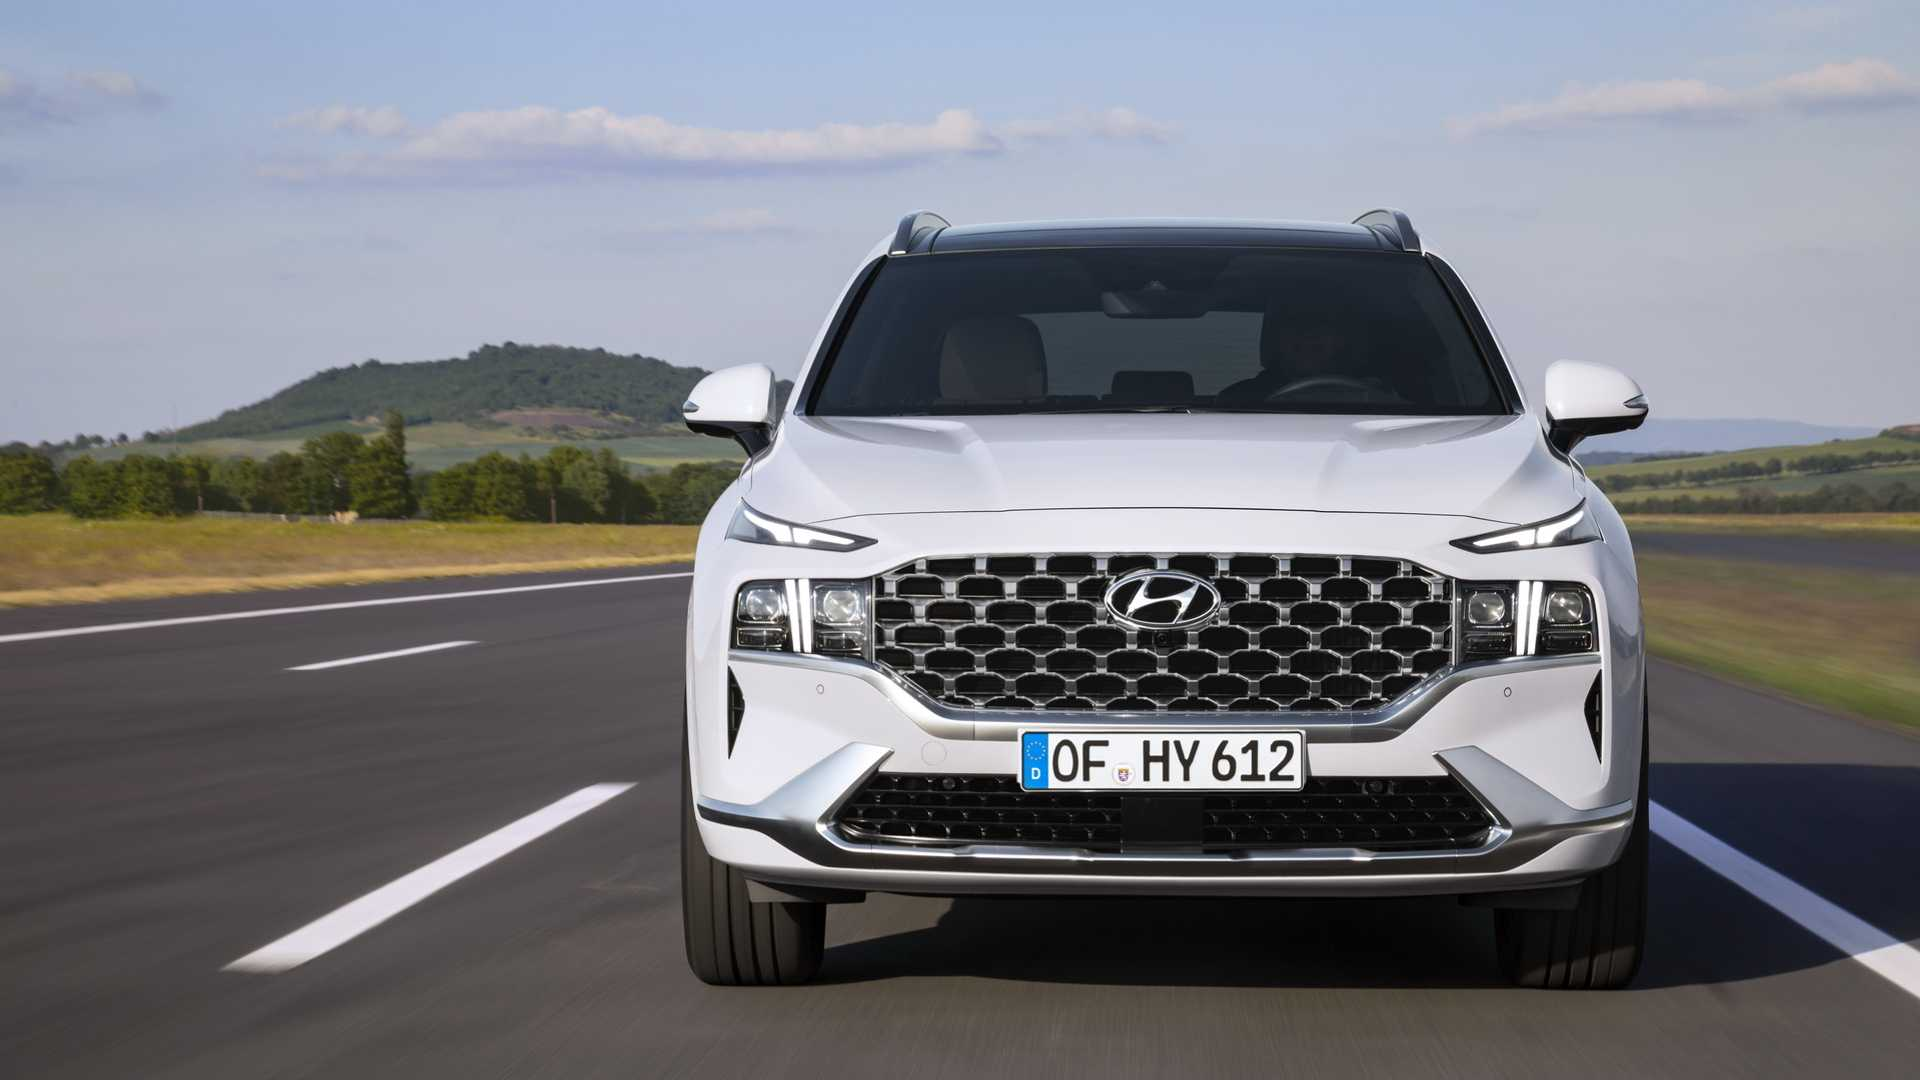 The Hyundai Santa Fe sells worse than other SUVs and its twin model Kia Sorento on the domestic market, so reports are coming in that the company will be updating it ahead of schedule.